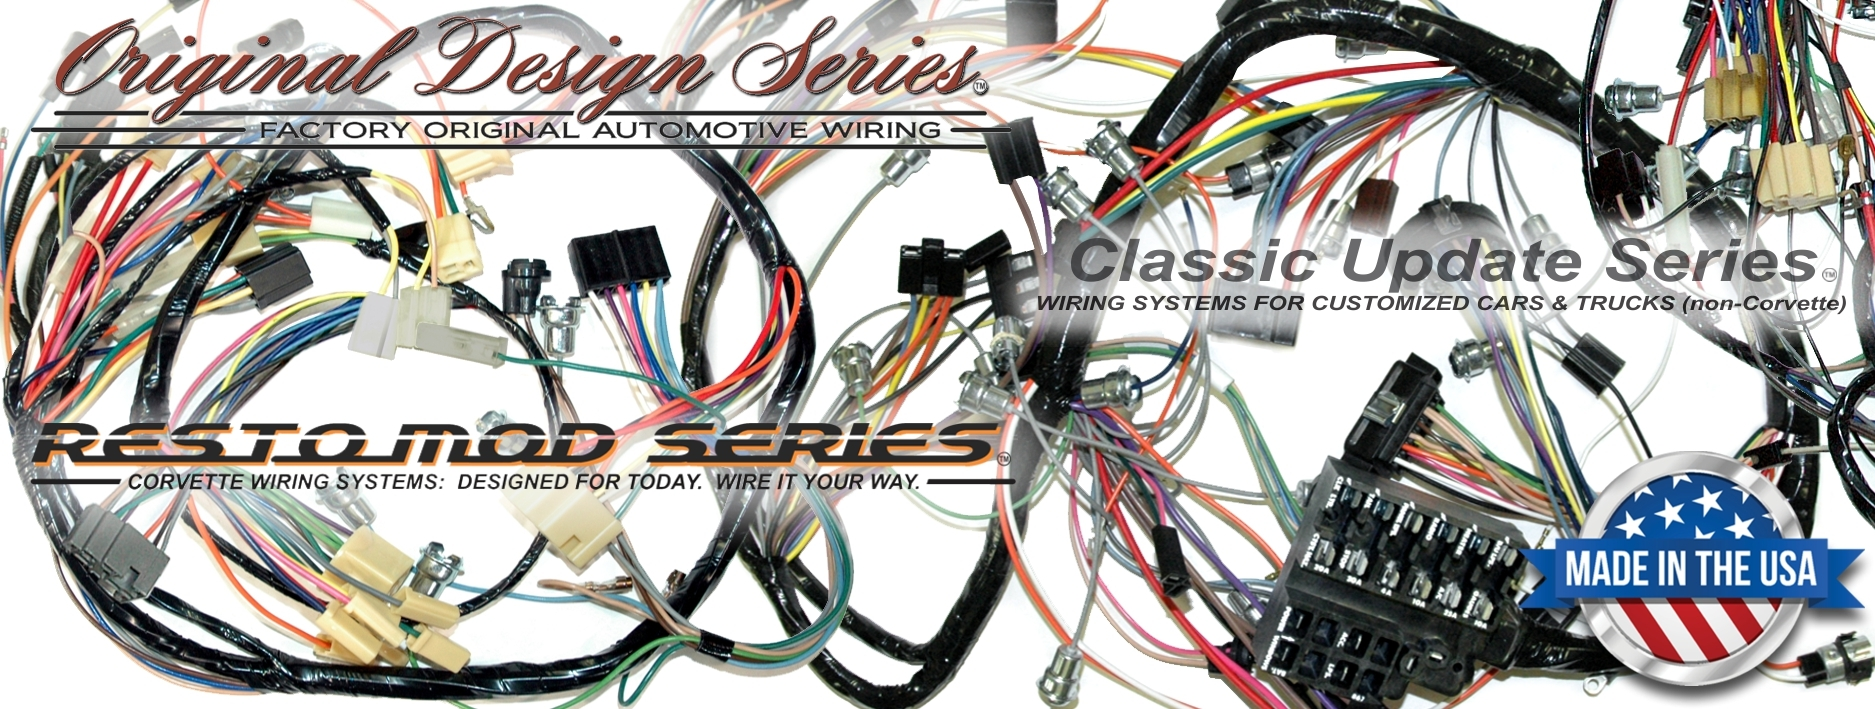 new header wiring_harnesses exact oem reproduction wiring harnesses and restomod wiring wiring harness for cars at gsmportal.co